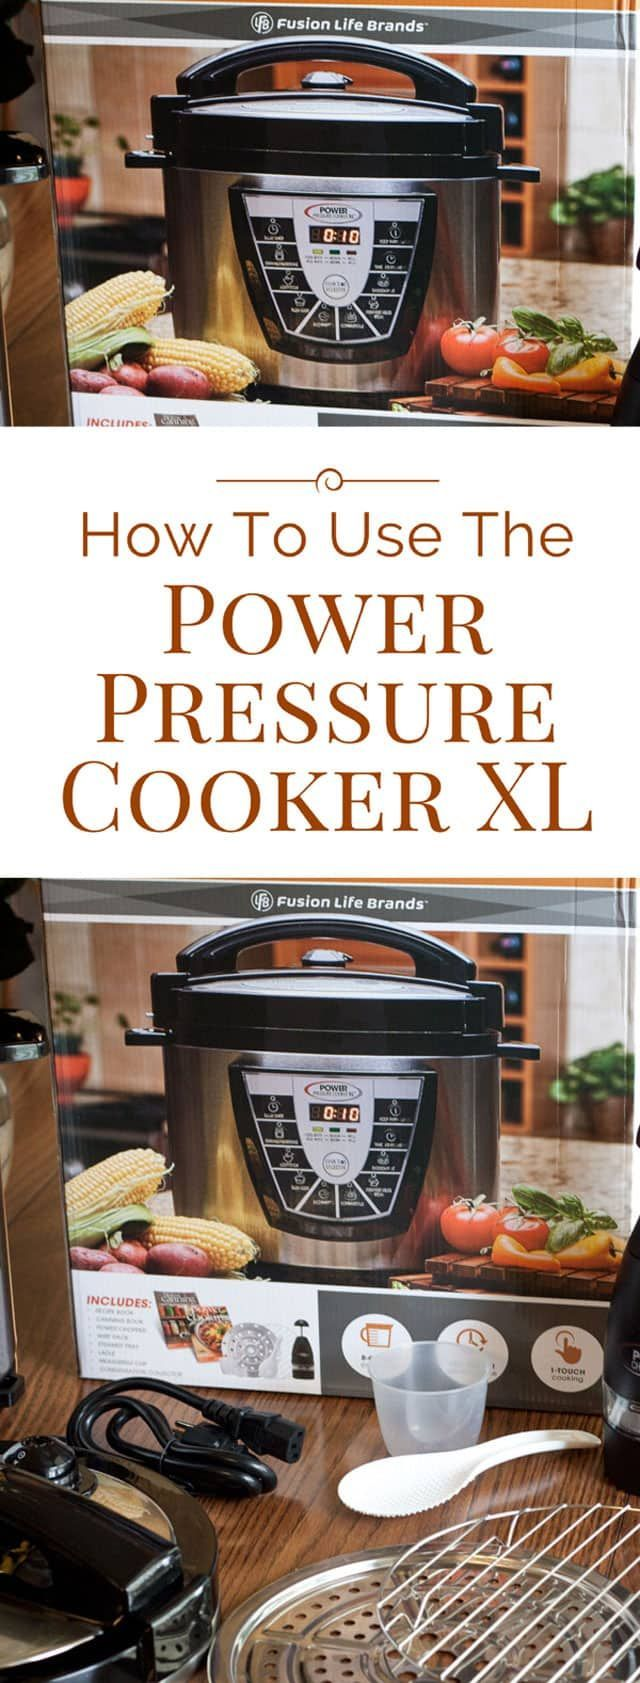 How To Use The Power Pressure Cooker Xl